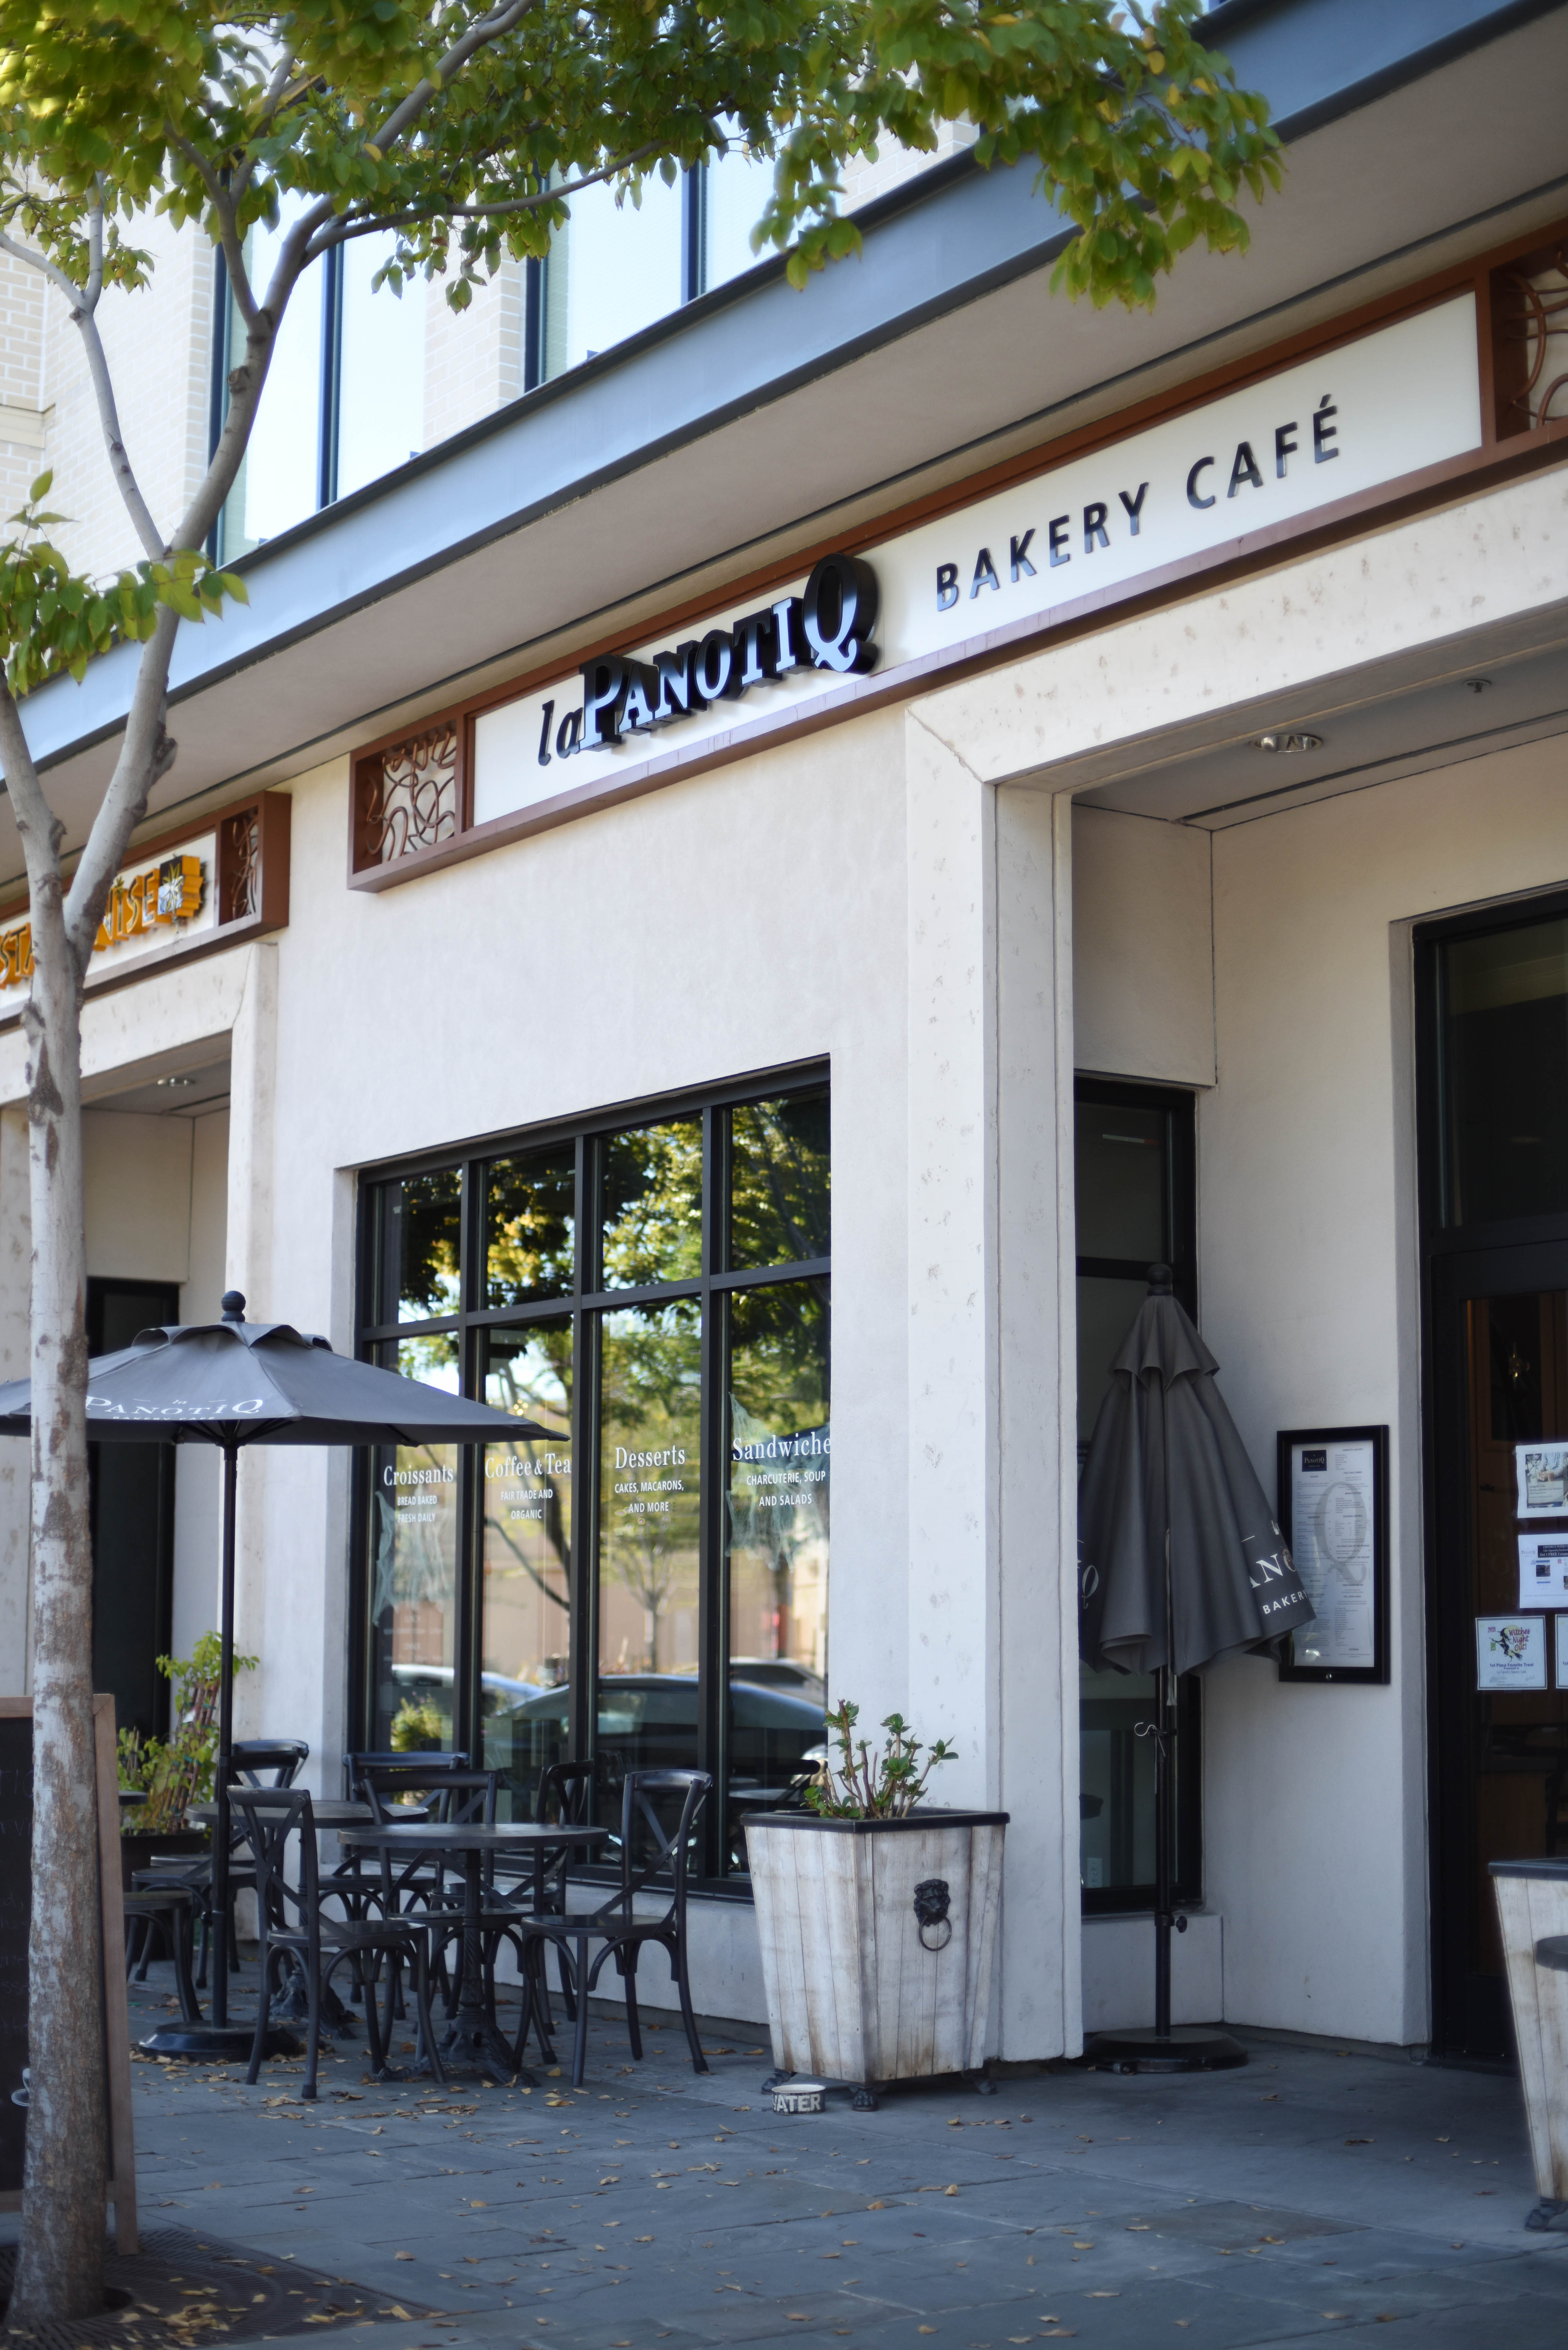 share my space at la panotiq bakery cafe livermore with condition restaurant livermore